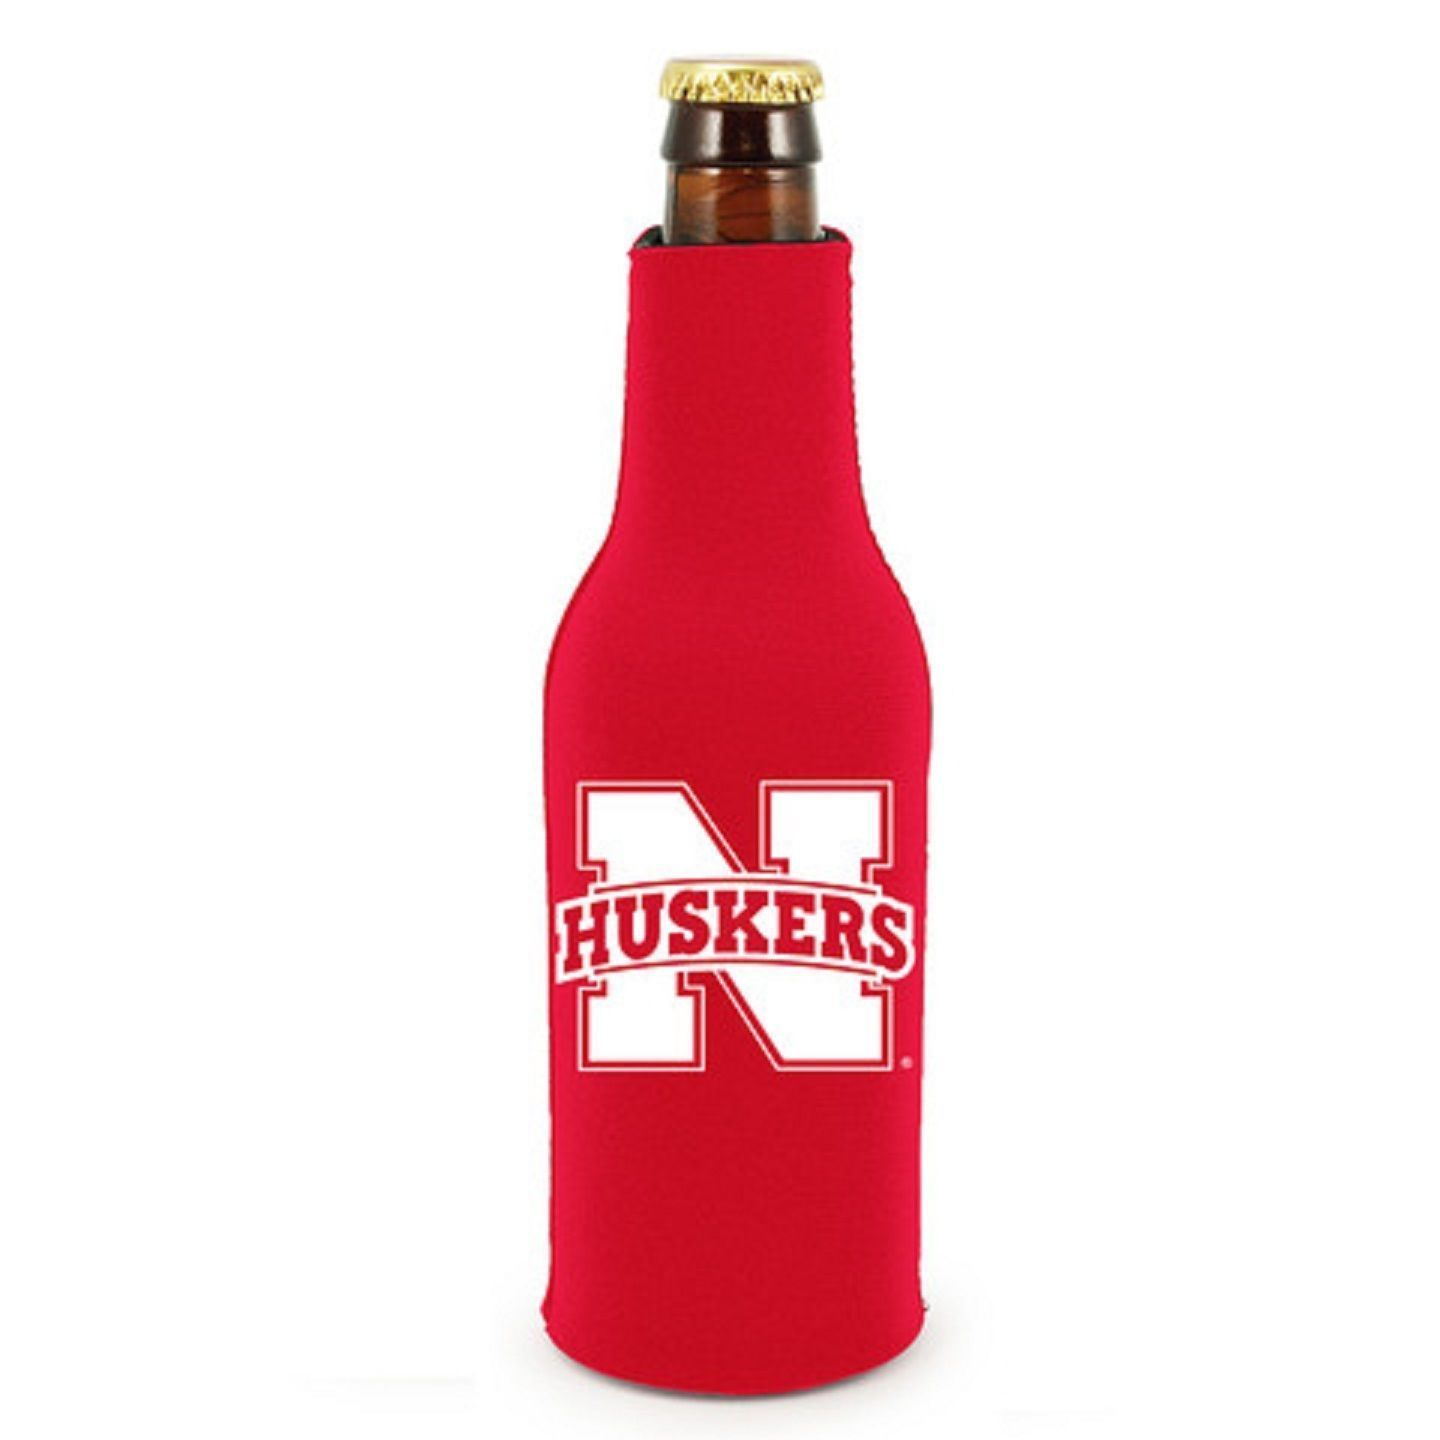 2 NEBRASKA HUSKERS BEER SODA WATER BOTTLE ZIPPER KOOZIE COOLIE HOLDER NCAA